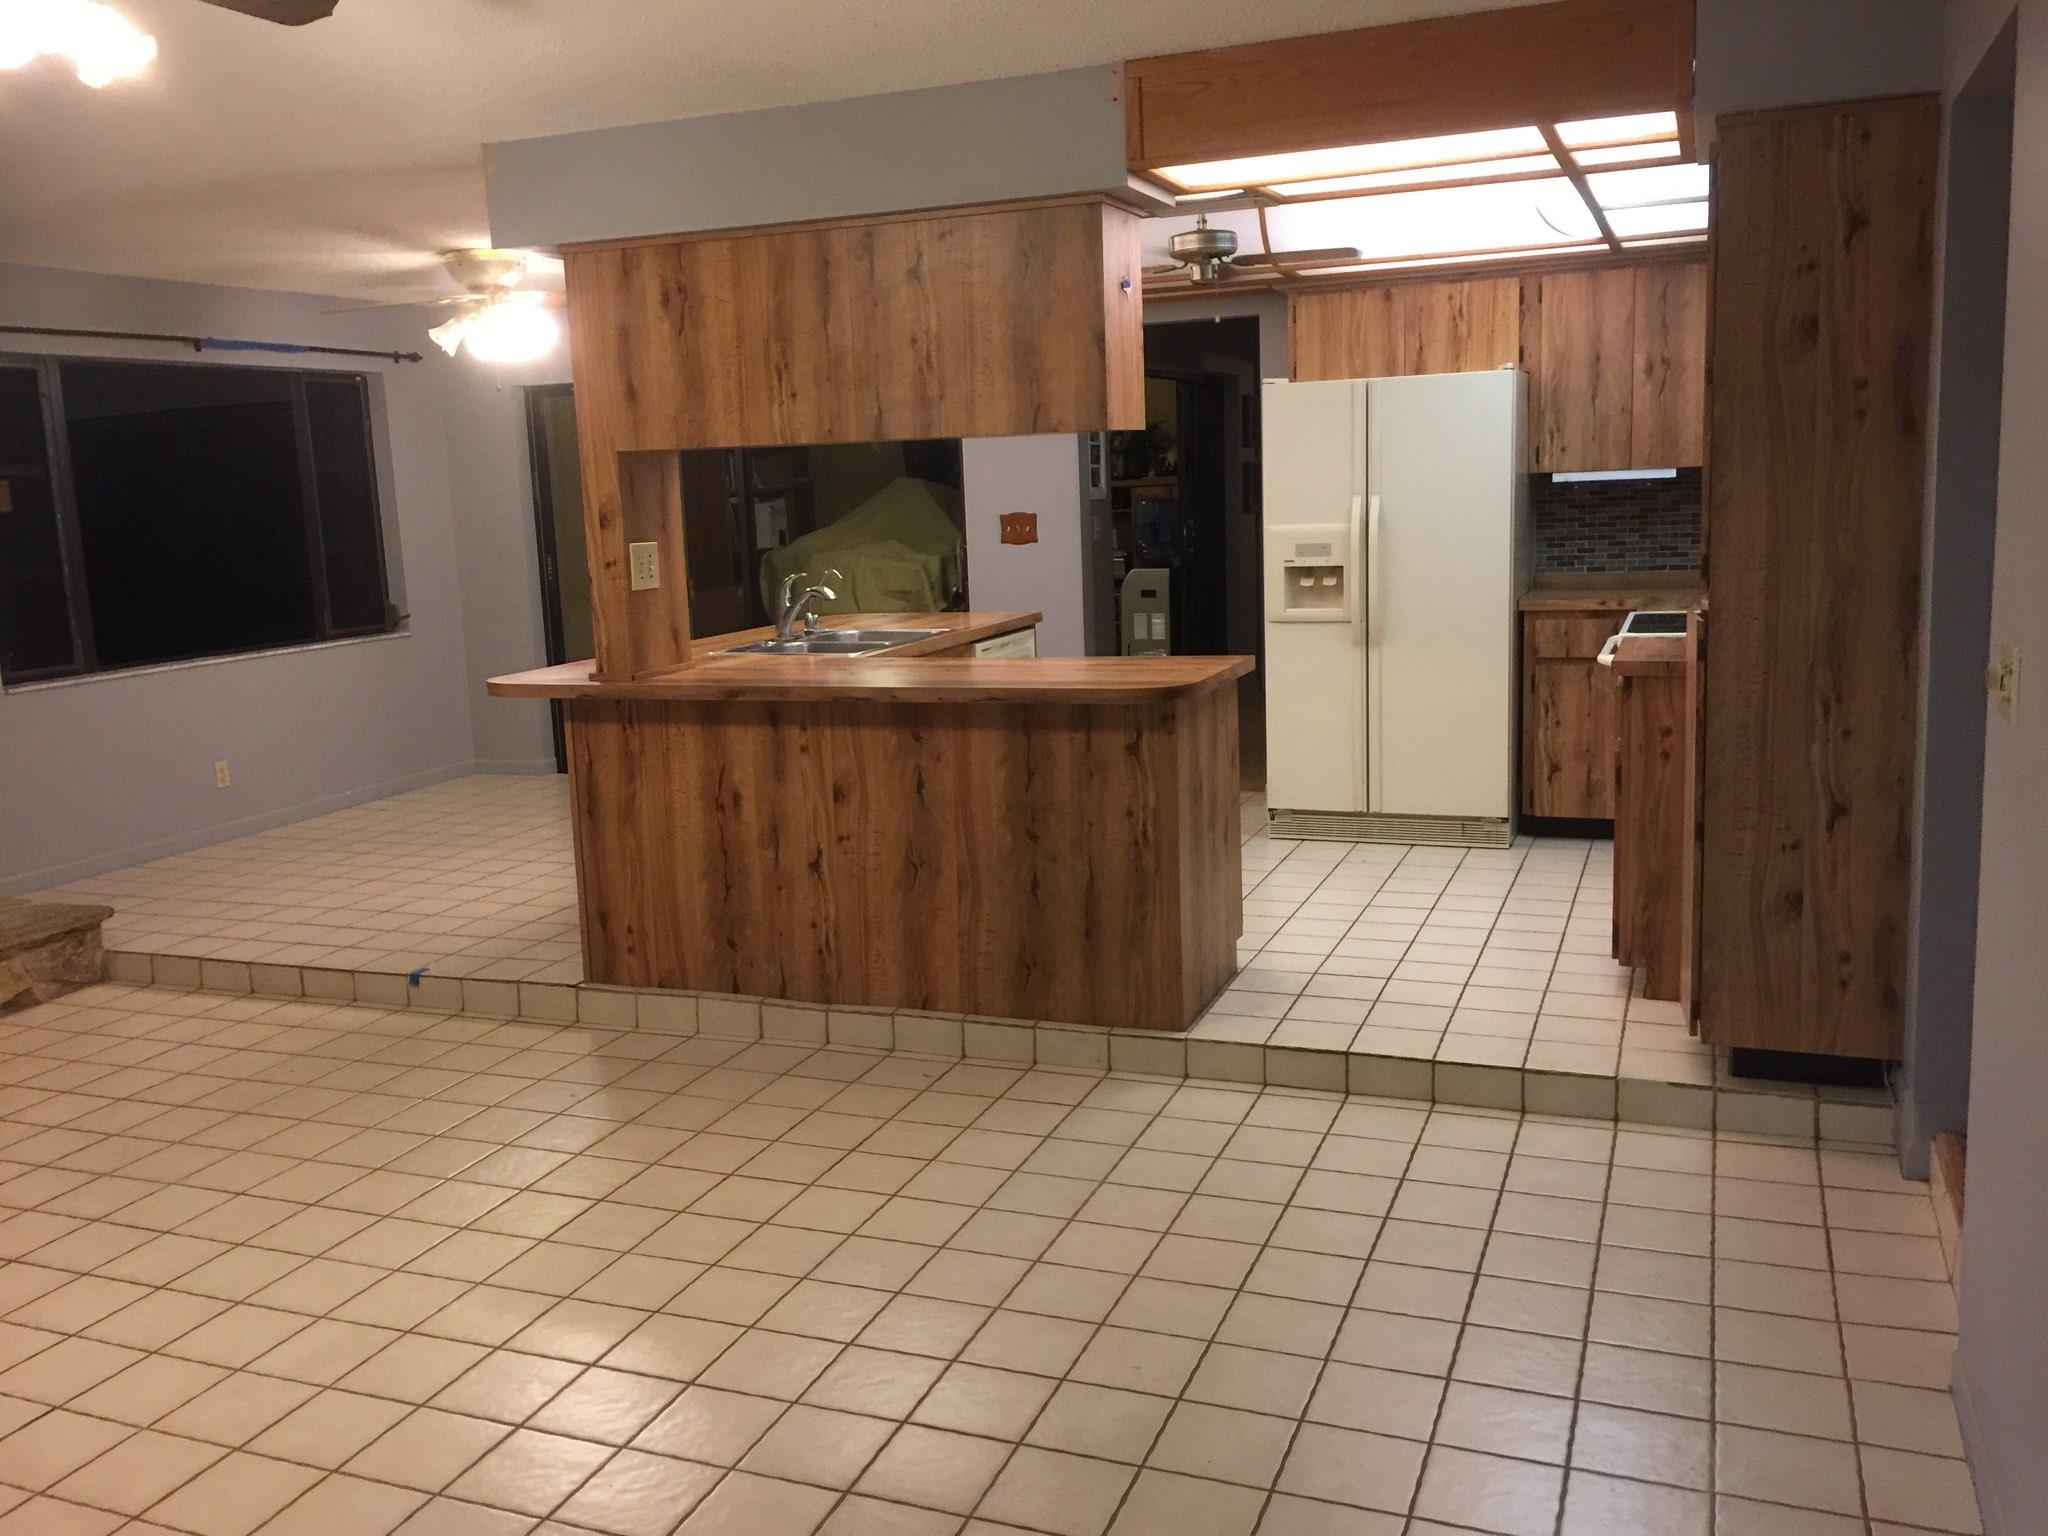 Hathaway Home Remodel - Before Picture 6